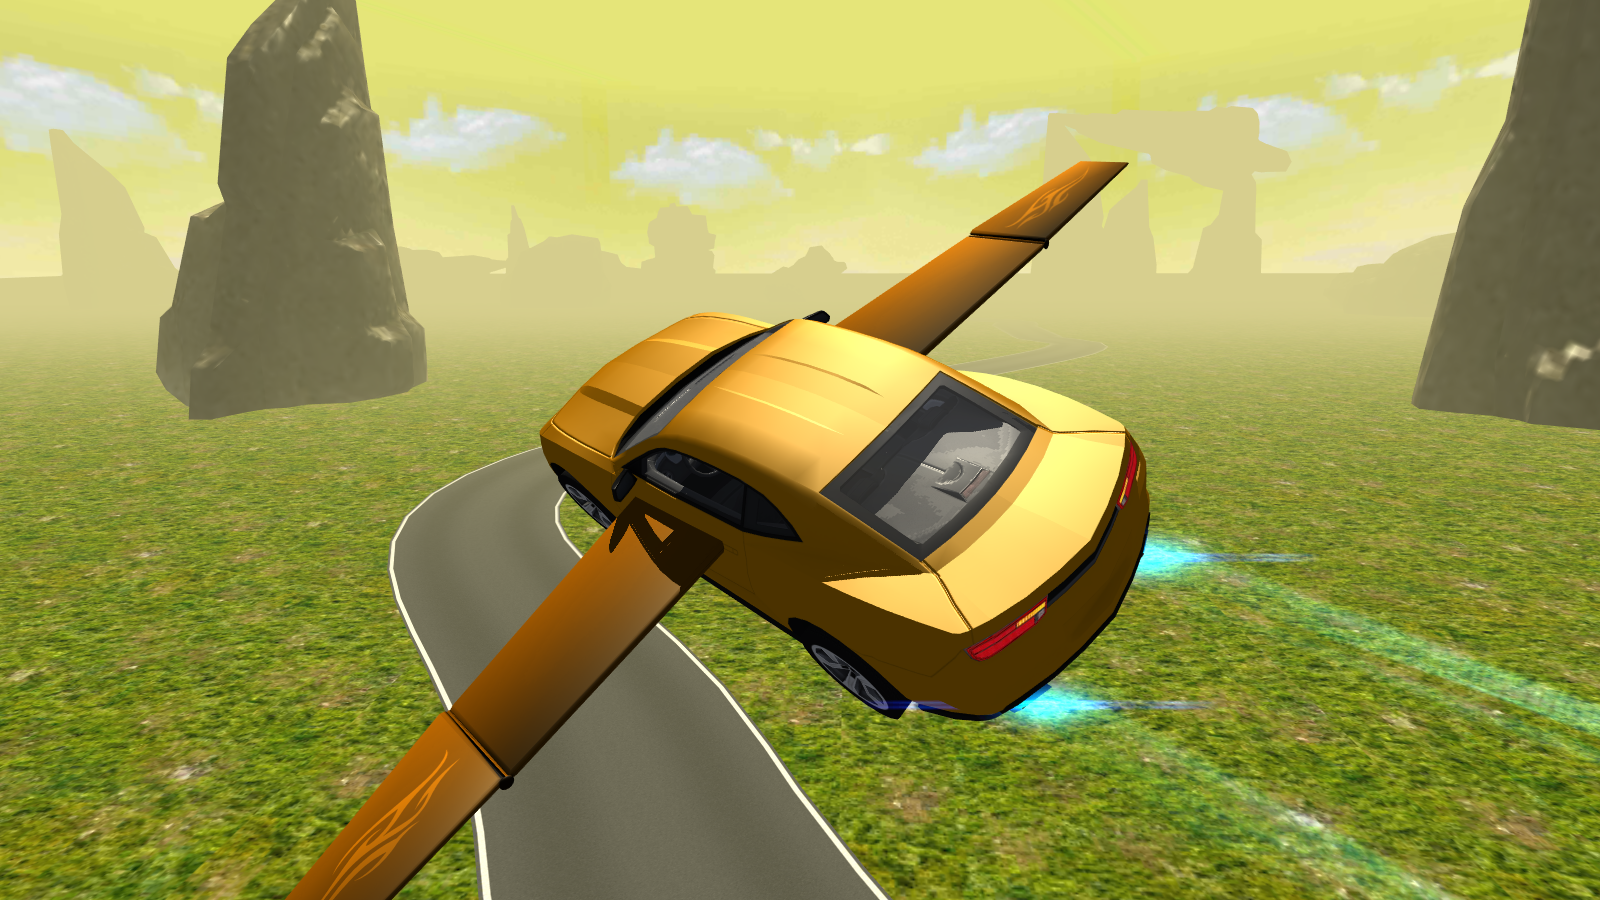 Flying Muscle Car Simulator 3d 2 Apk Download Android Simulation Games